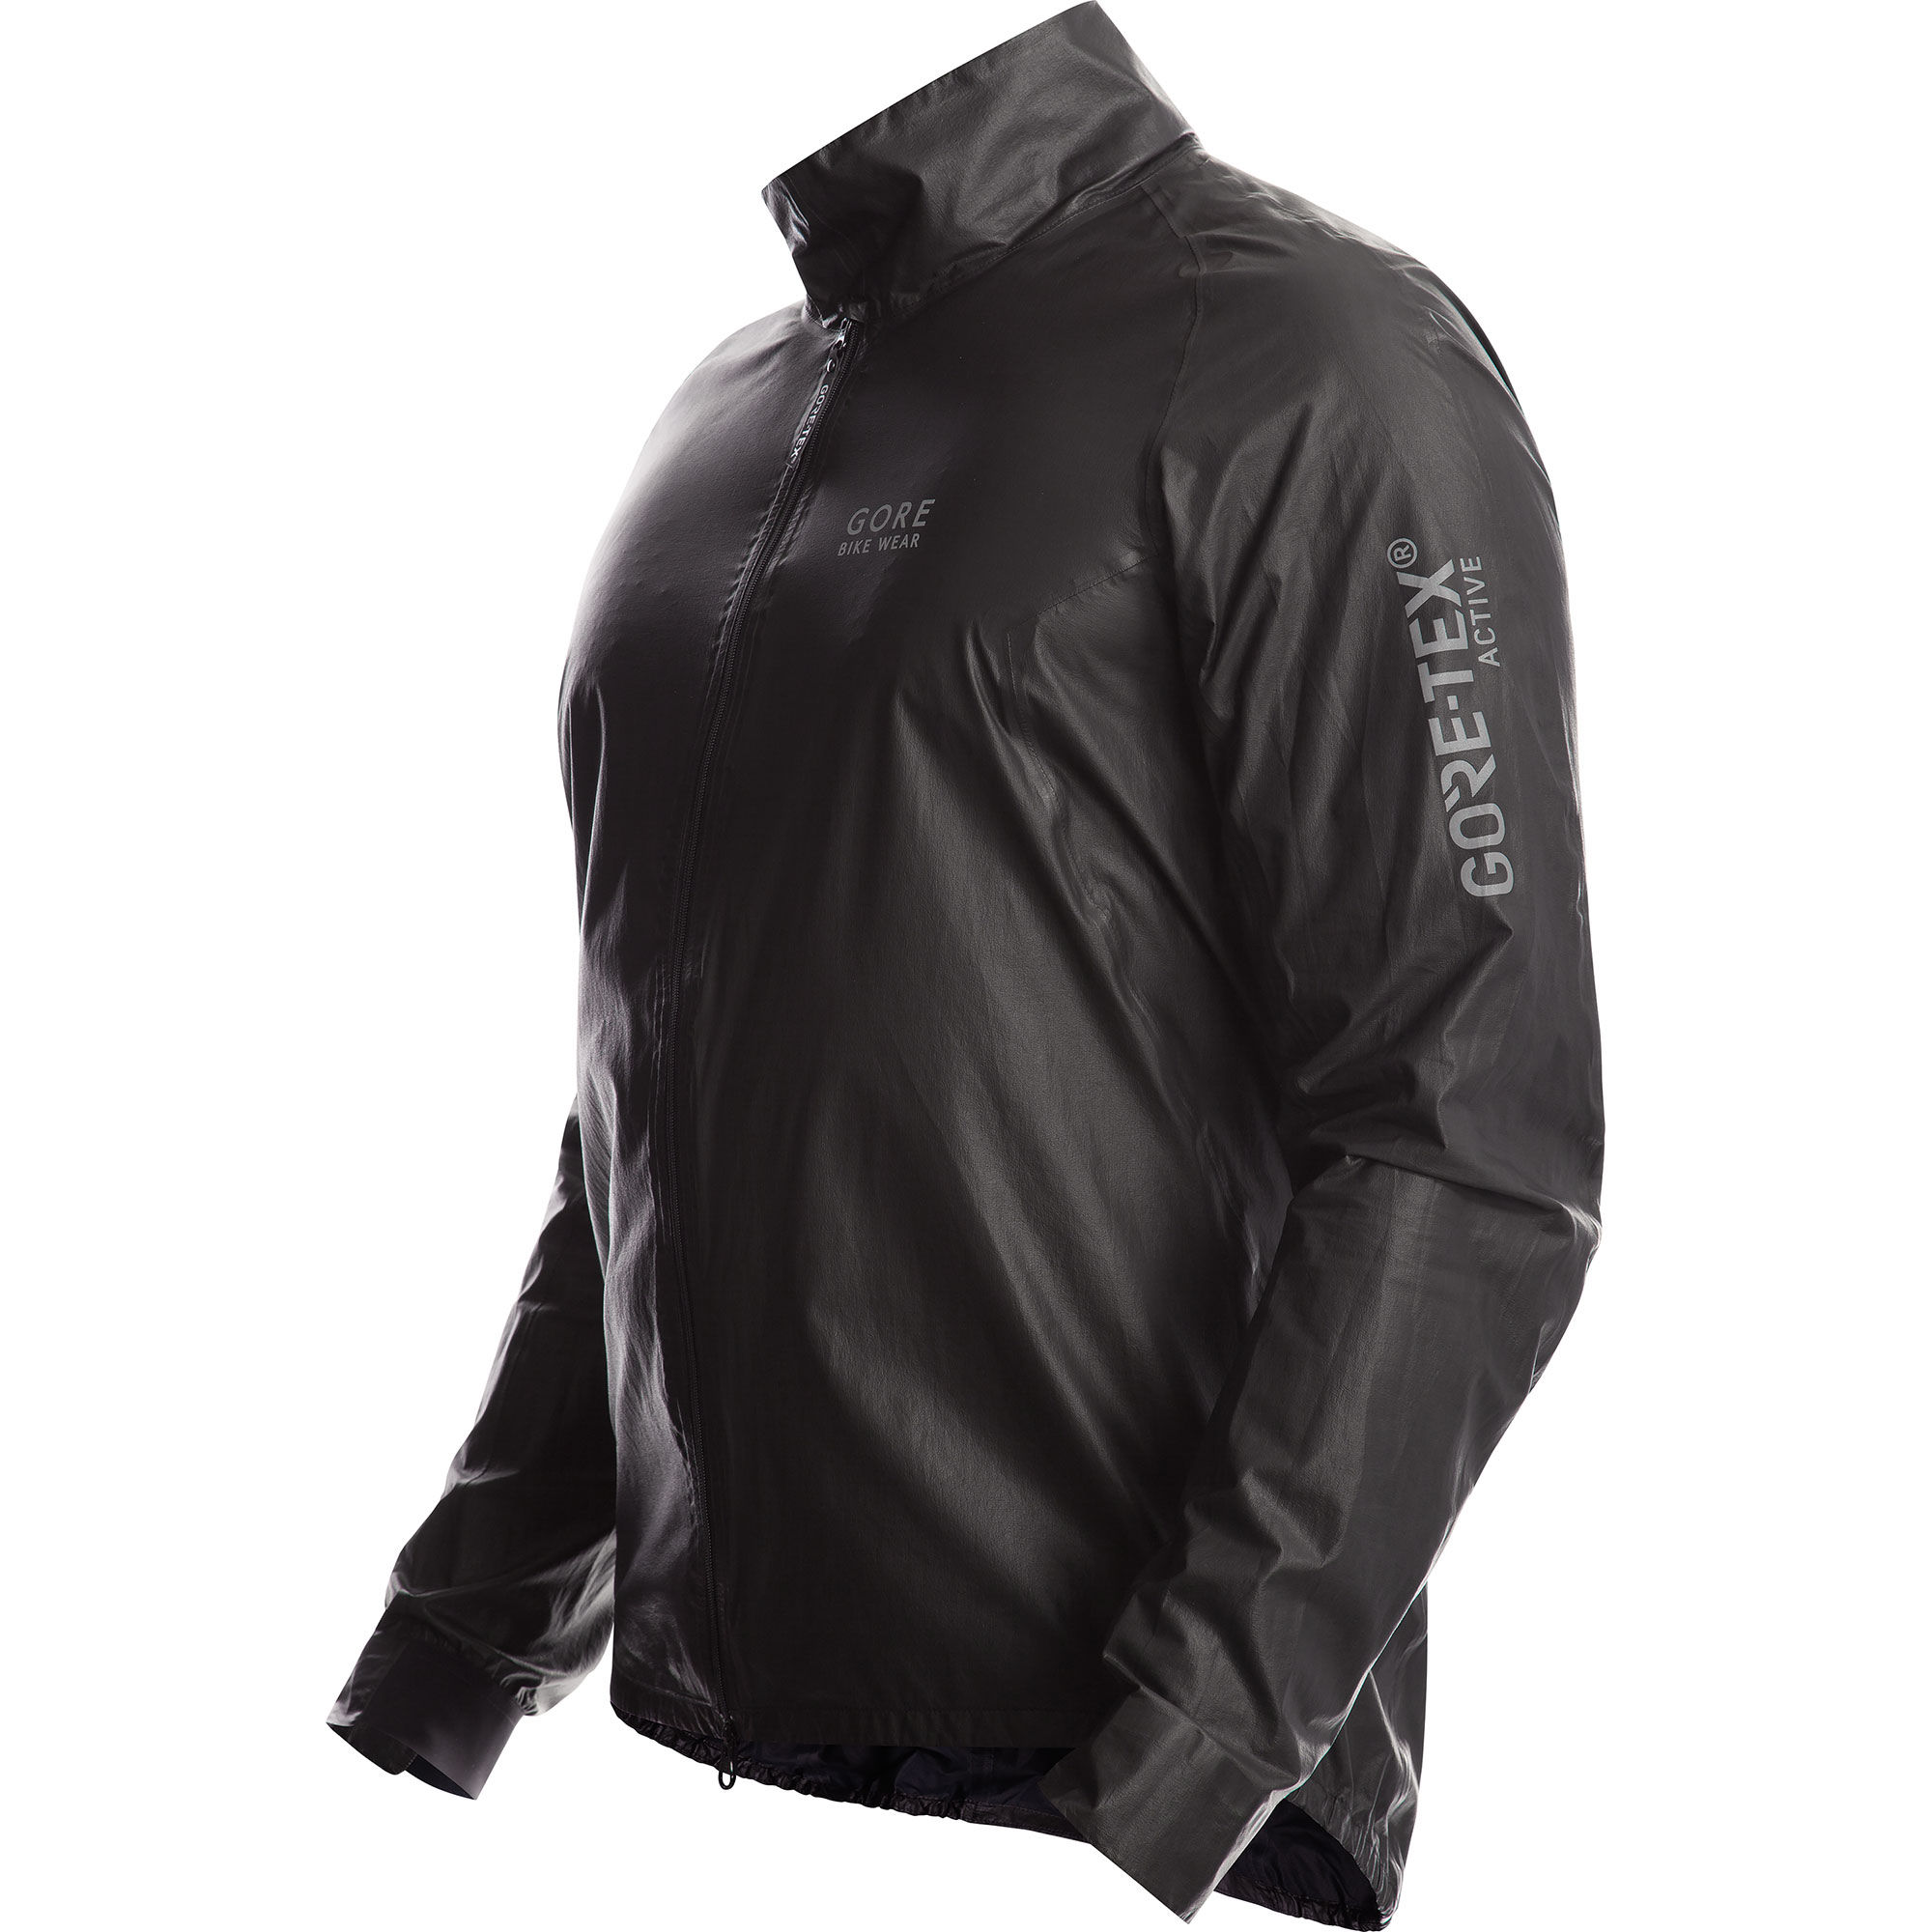 wiggle gore one 1985 gore tex shakedry jacket cycling waterproof jackets. Black Bedroom Furniture Sets. Home Design Ideas